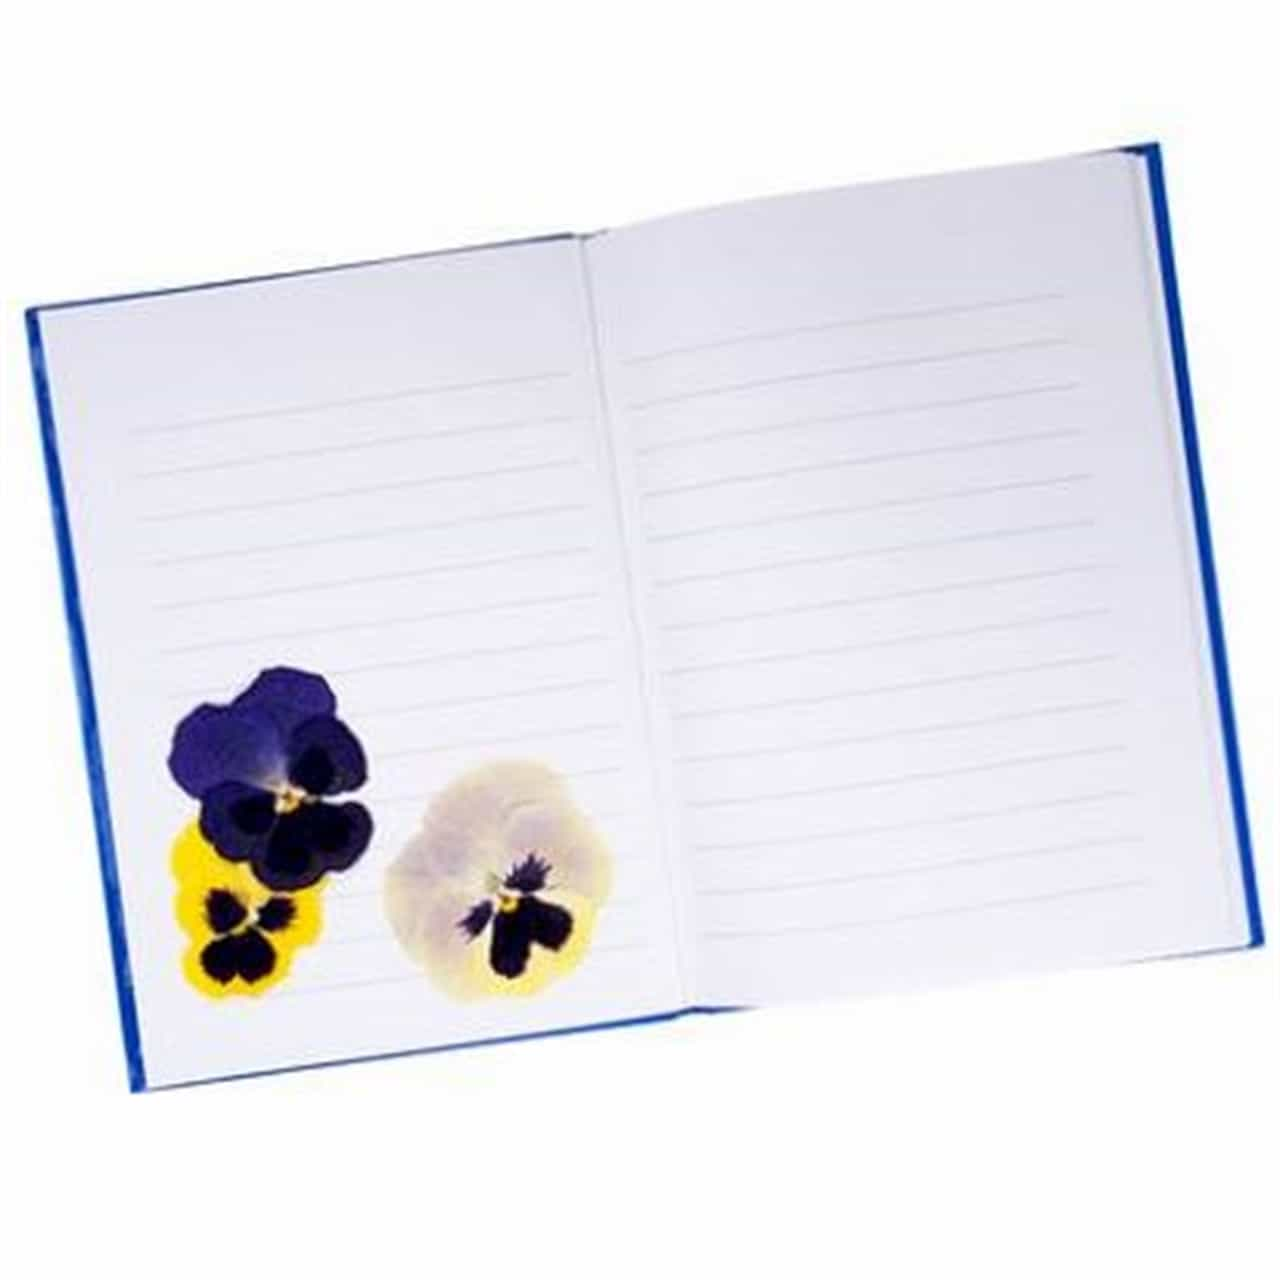 Pressed Flowers (Stationery)